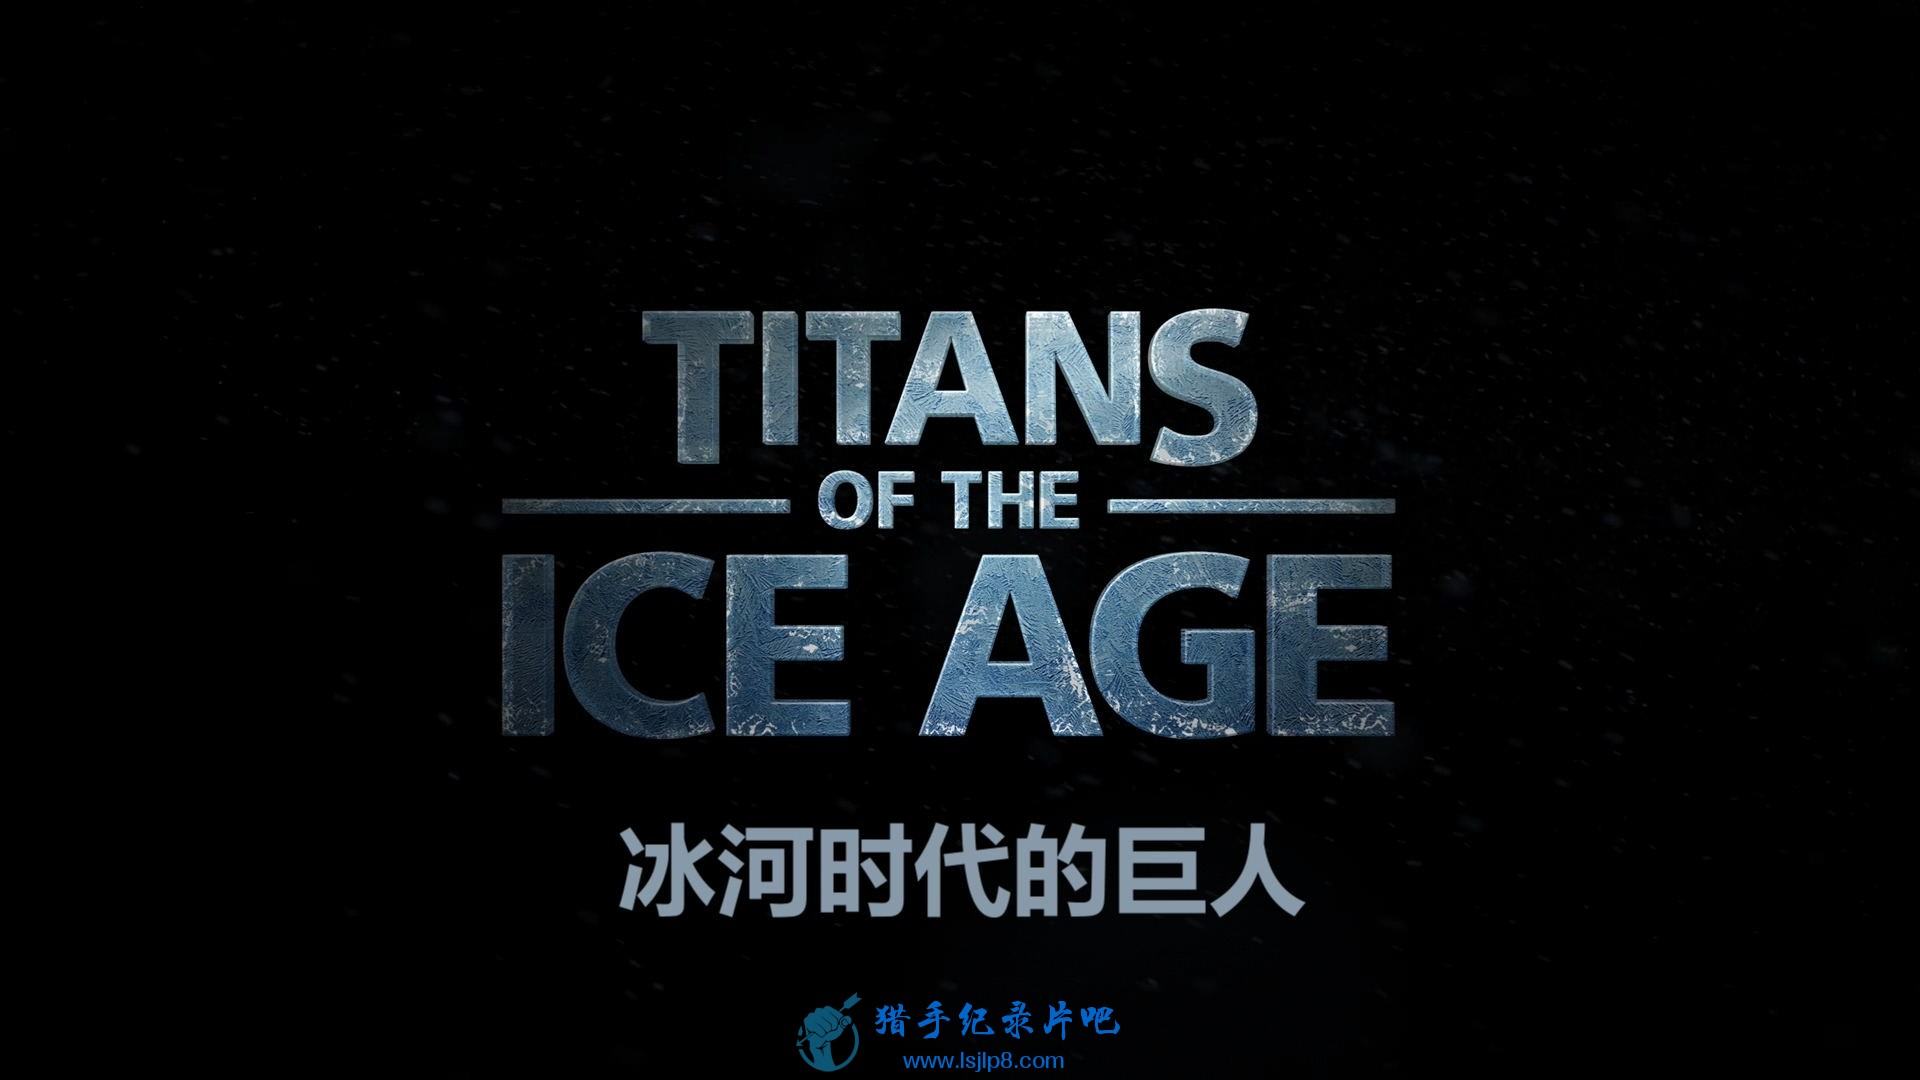 Titans.of.the.Ice.Age.2013.1080p.BluRay.x264.DTS-SWTYBLZ.mkv_20200613_101050.560.jpg